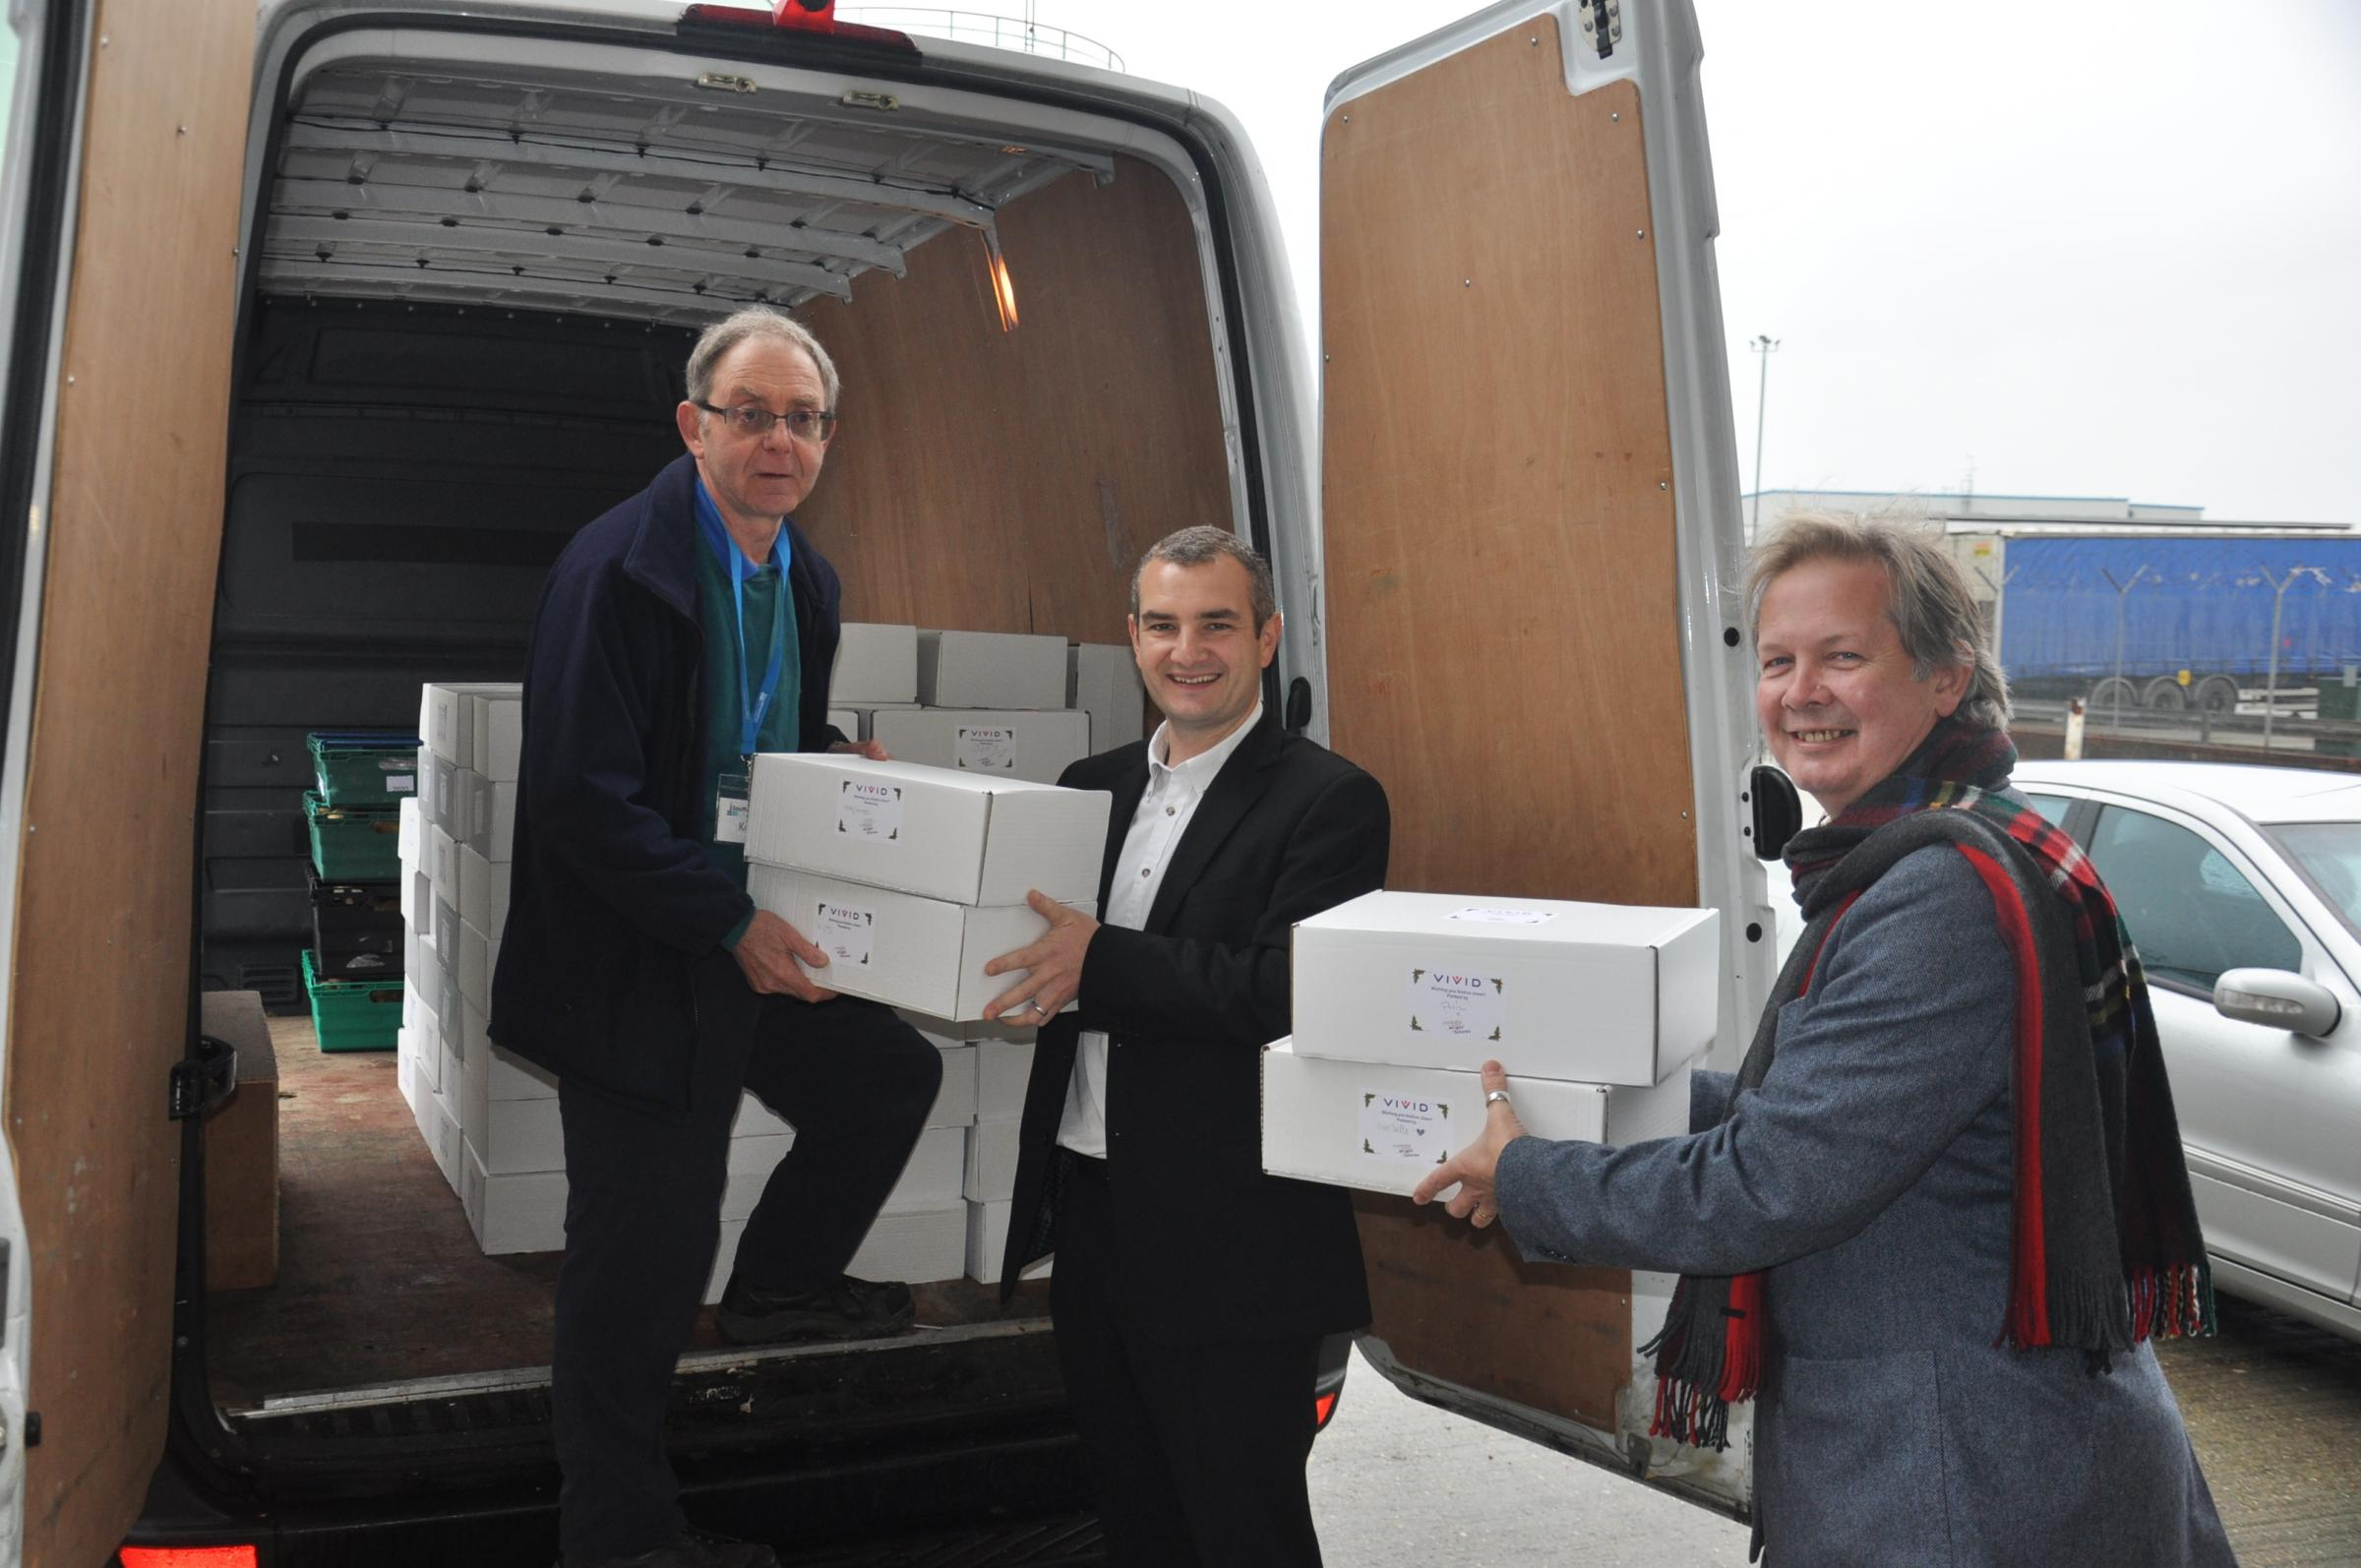 Southampton City Mission volunteer Ken Casey is helped by VIVID Director of New Business and Development Mike Shepherd and Director of Resources Duncan Short.